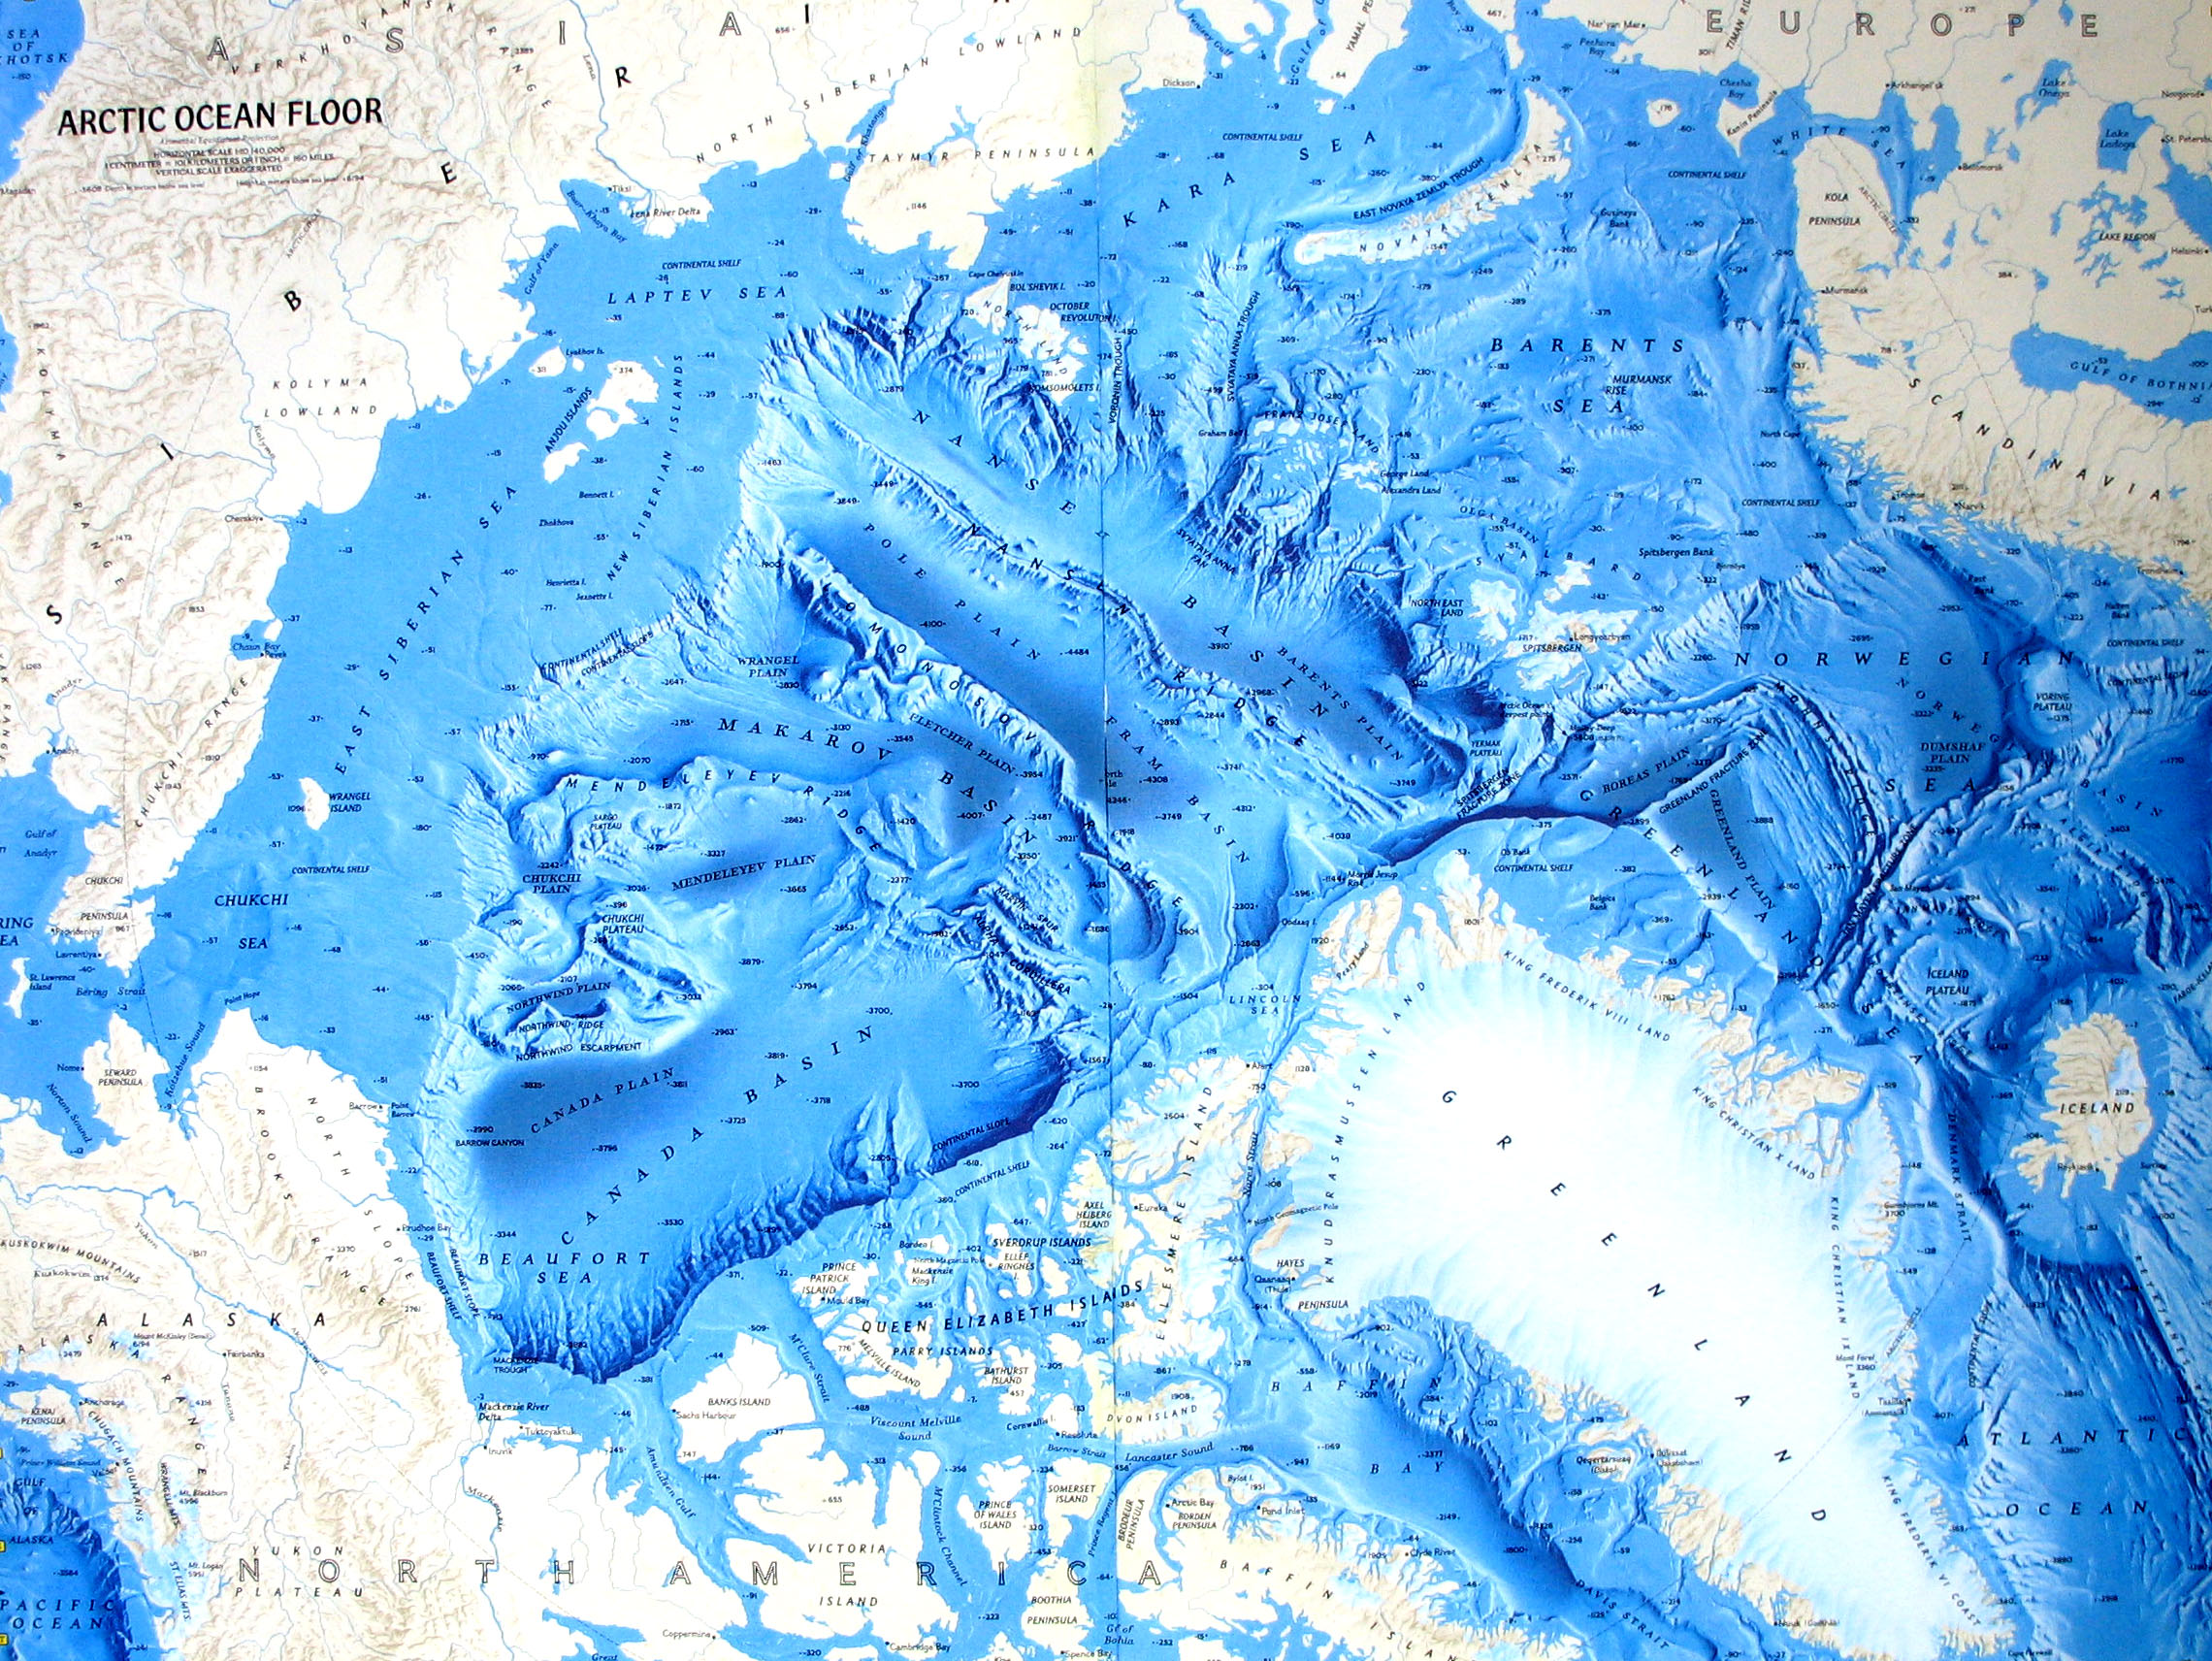 Ocean Floor Relief Maps | Detailed Maps